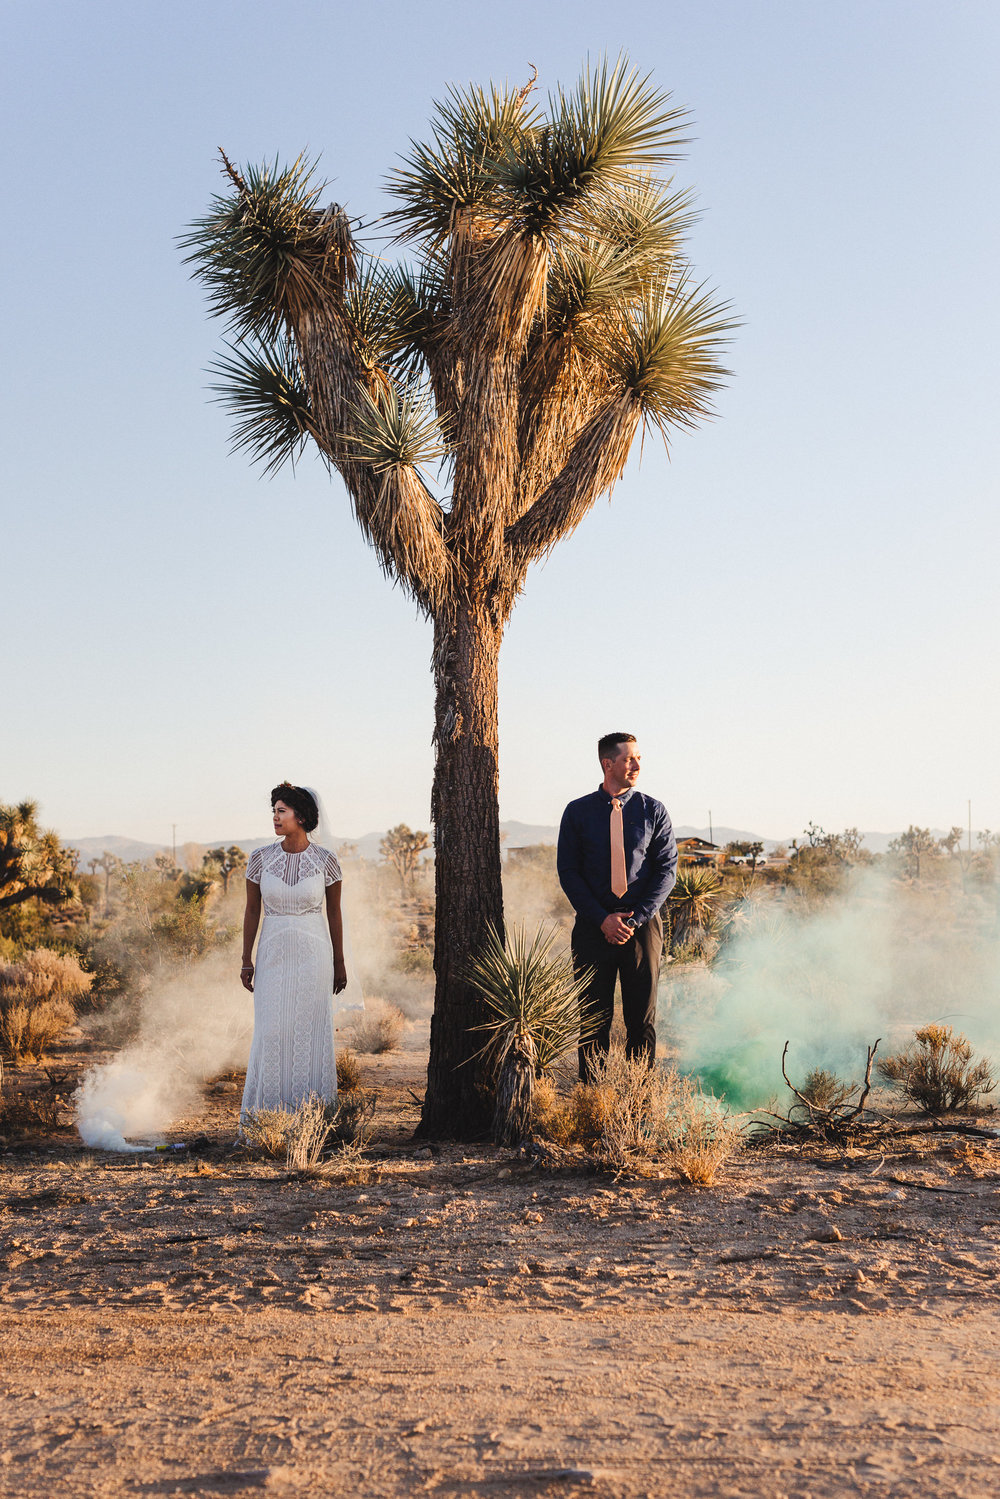 sJ + N - Joshua Tree, CA - 08 Bride + Groom-16.jpg